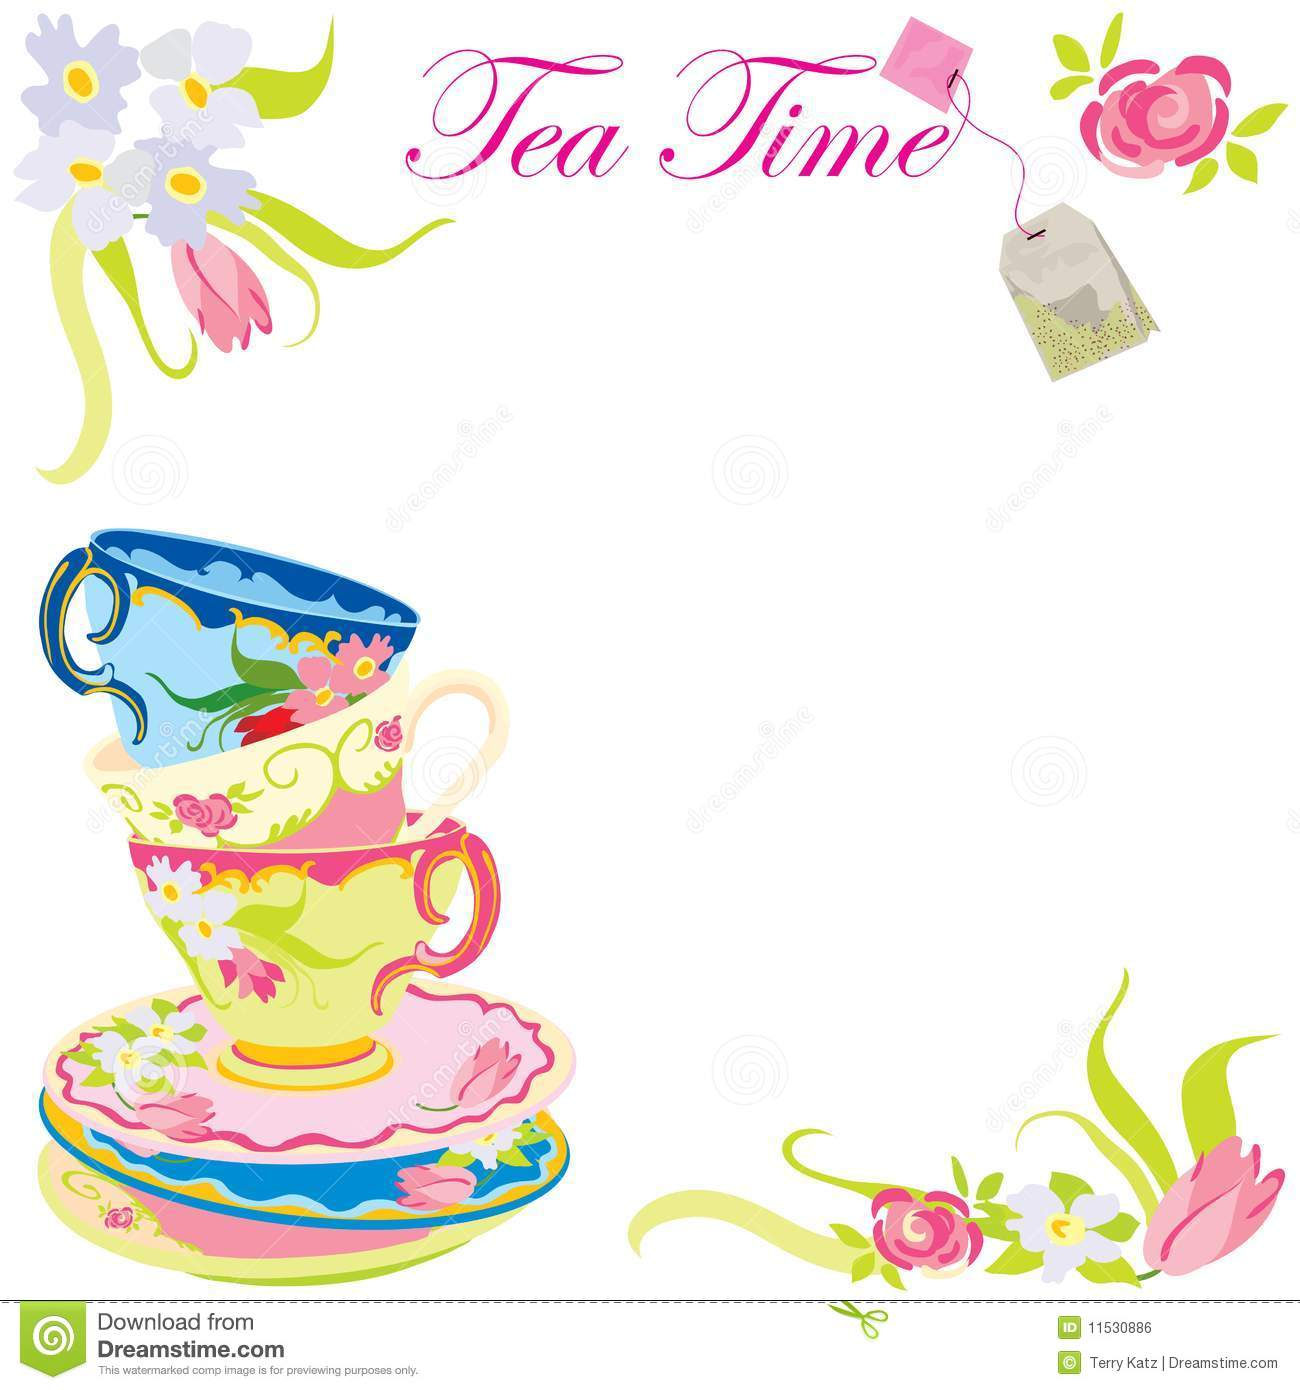 tea time party invitation stock vector illustration of background